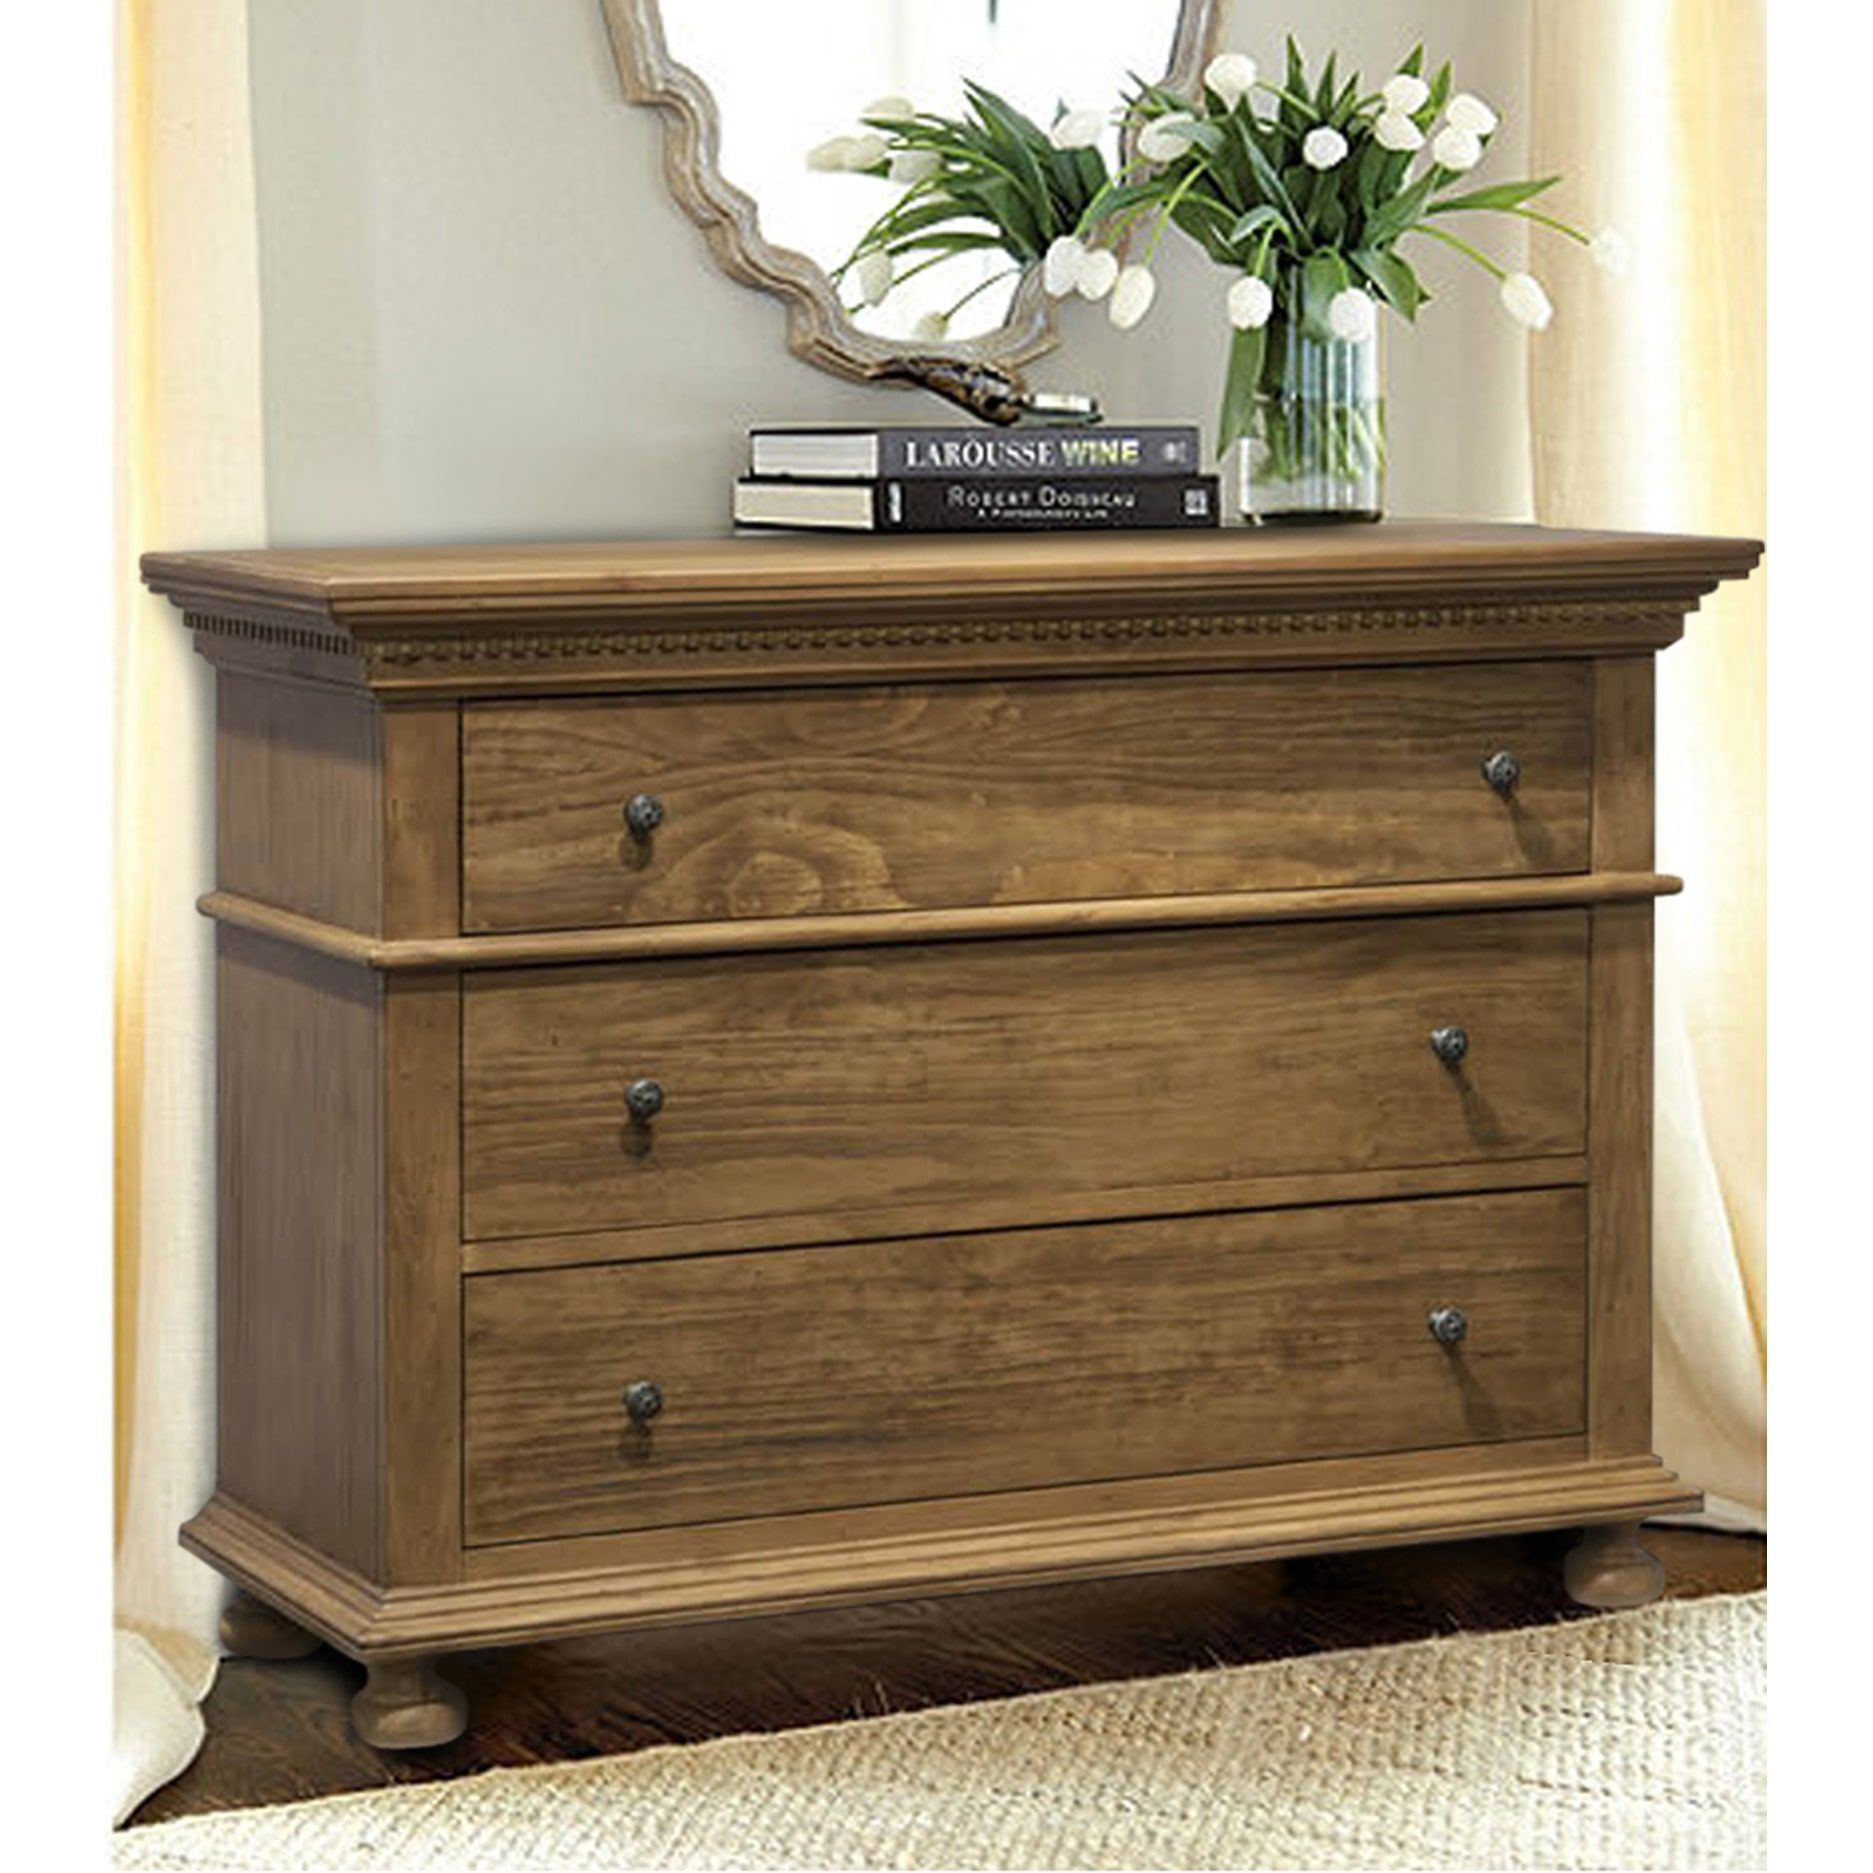 3 drawer dresser home goods free shipping on orders over 45 at overstock com your home goods store get 5 in rewards with club o